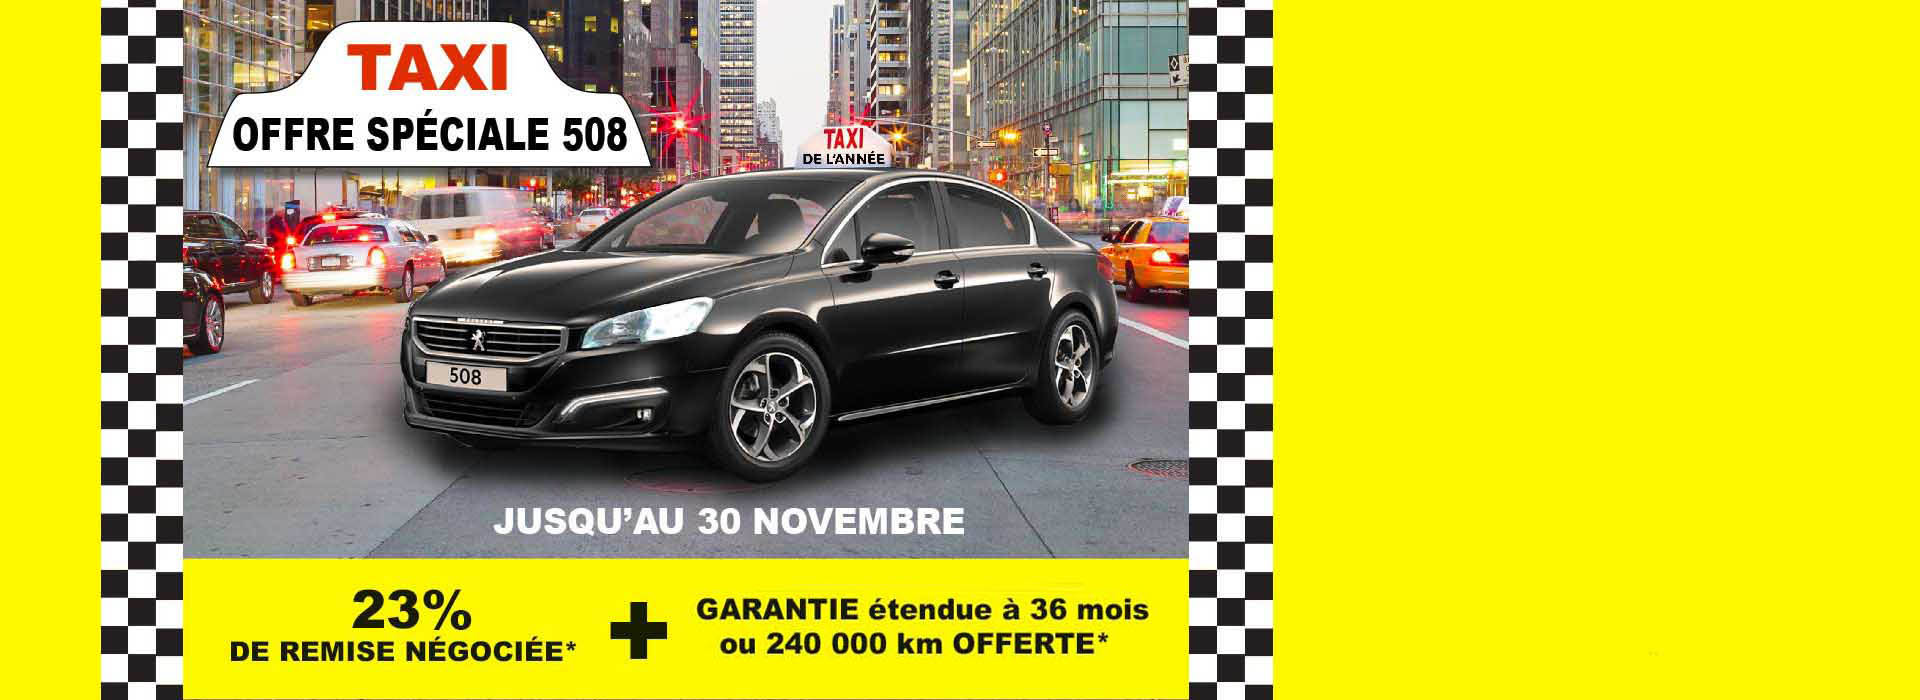 OFFRE SPECIALE TAXI